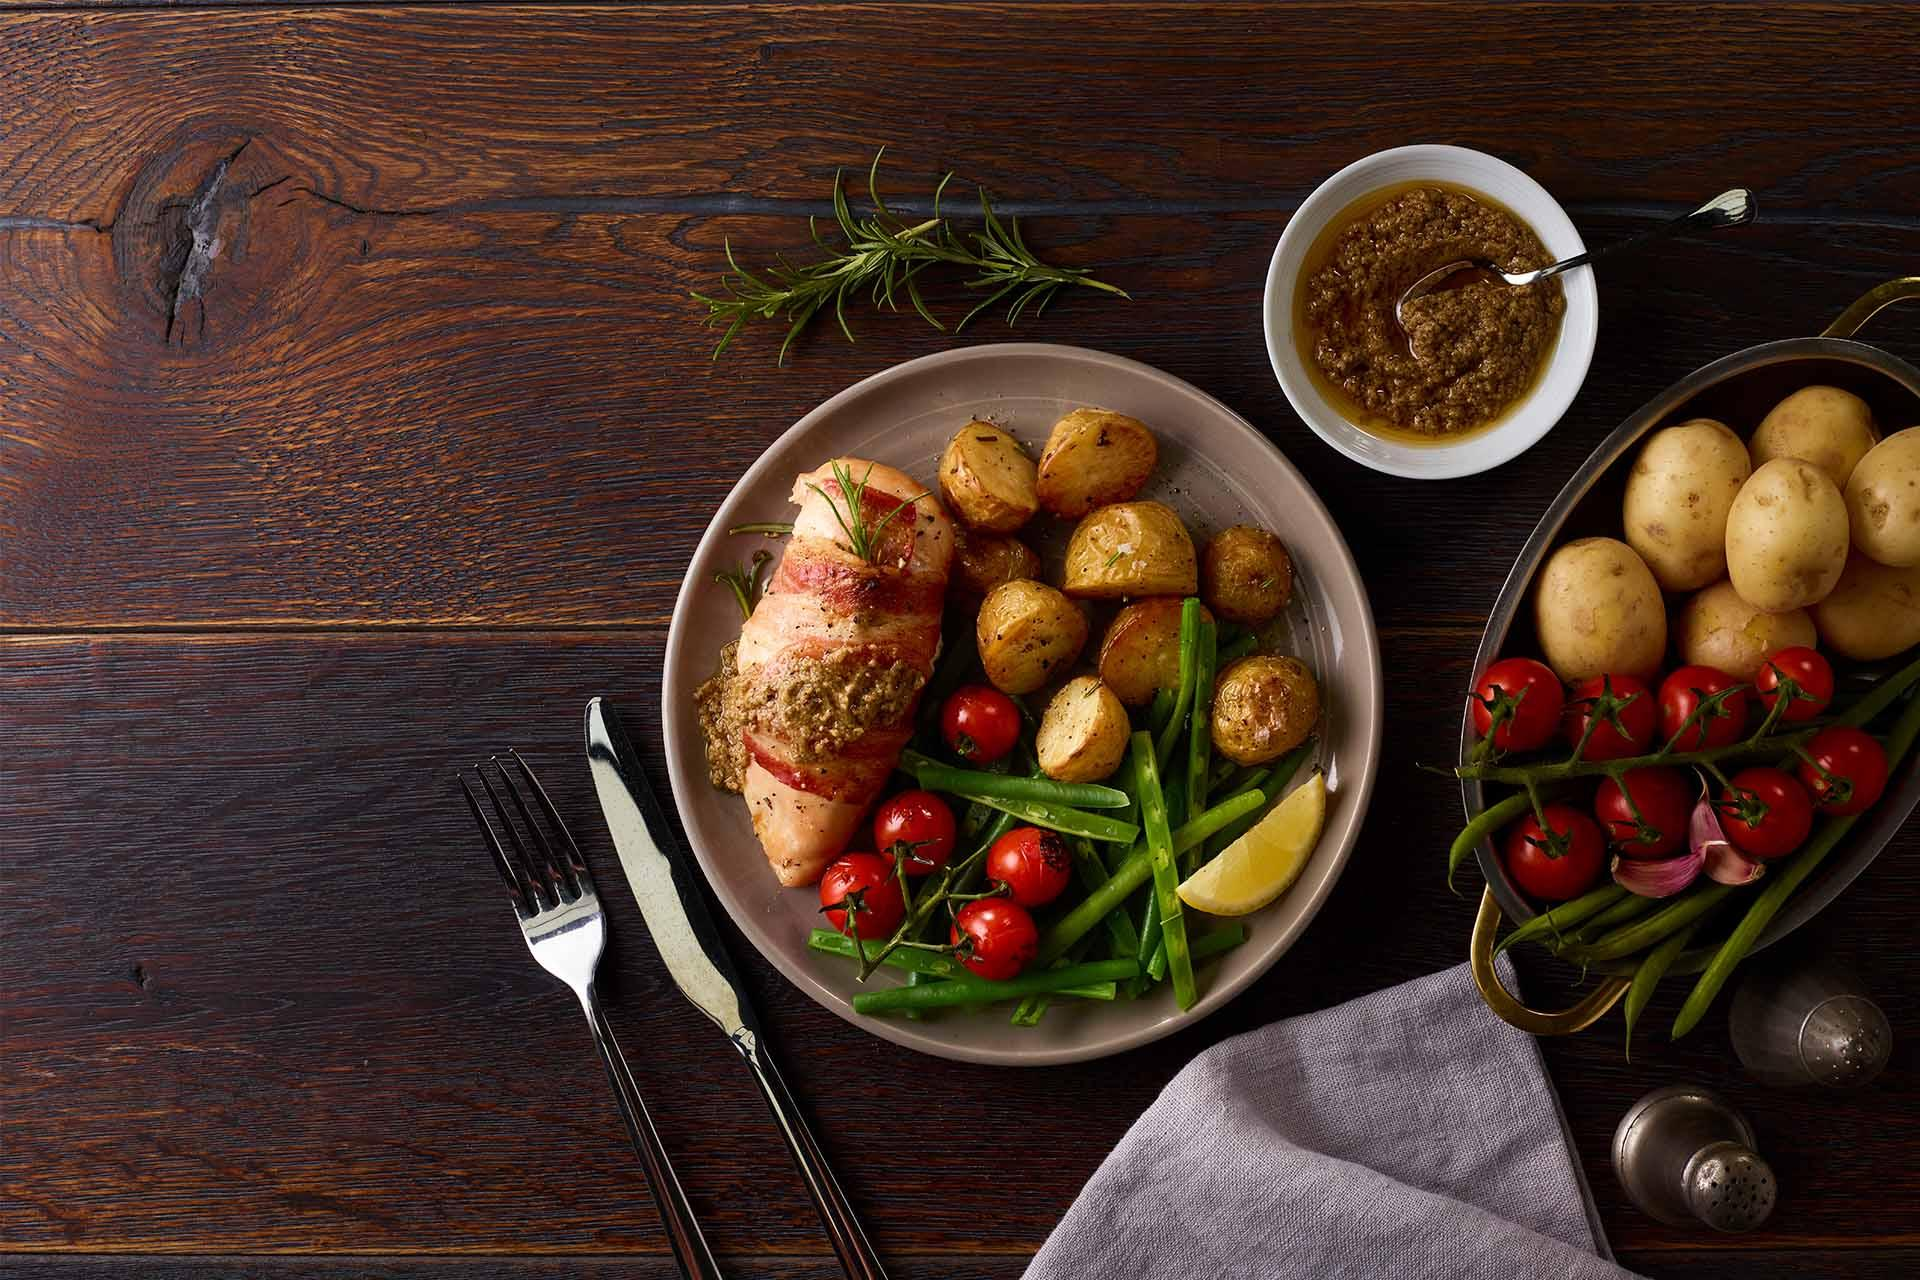 Chicken wrapped in bacon with rosemary, lemon and new potatoes